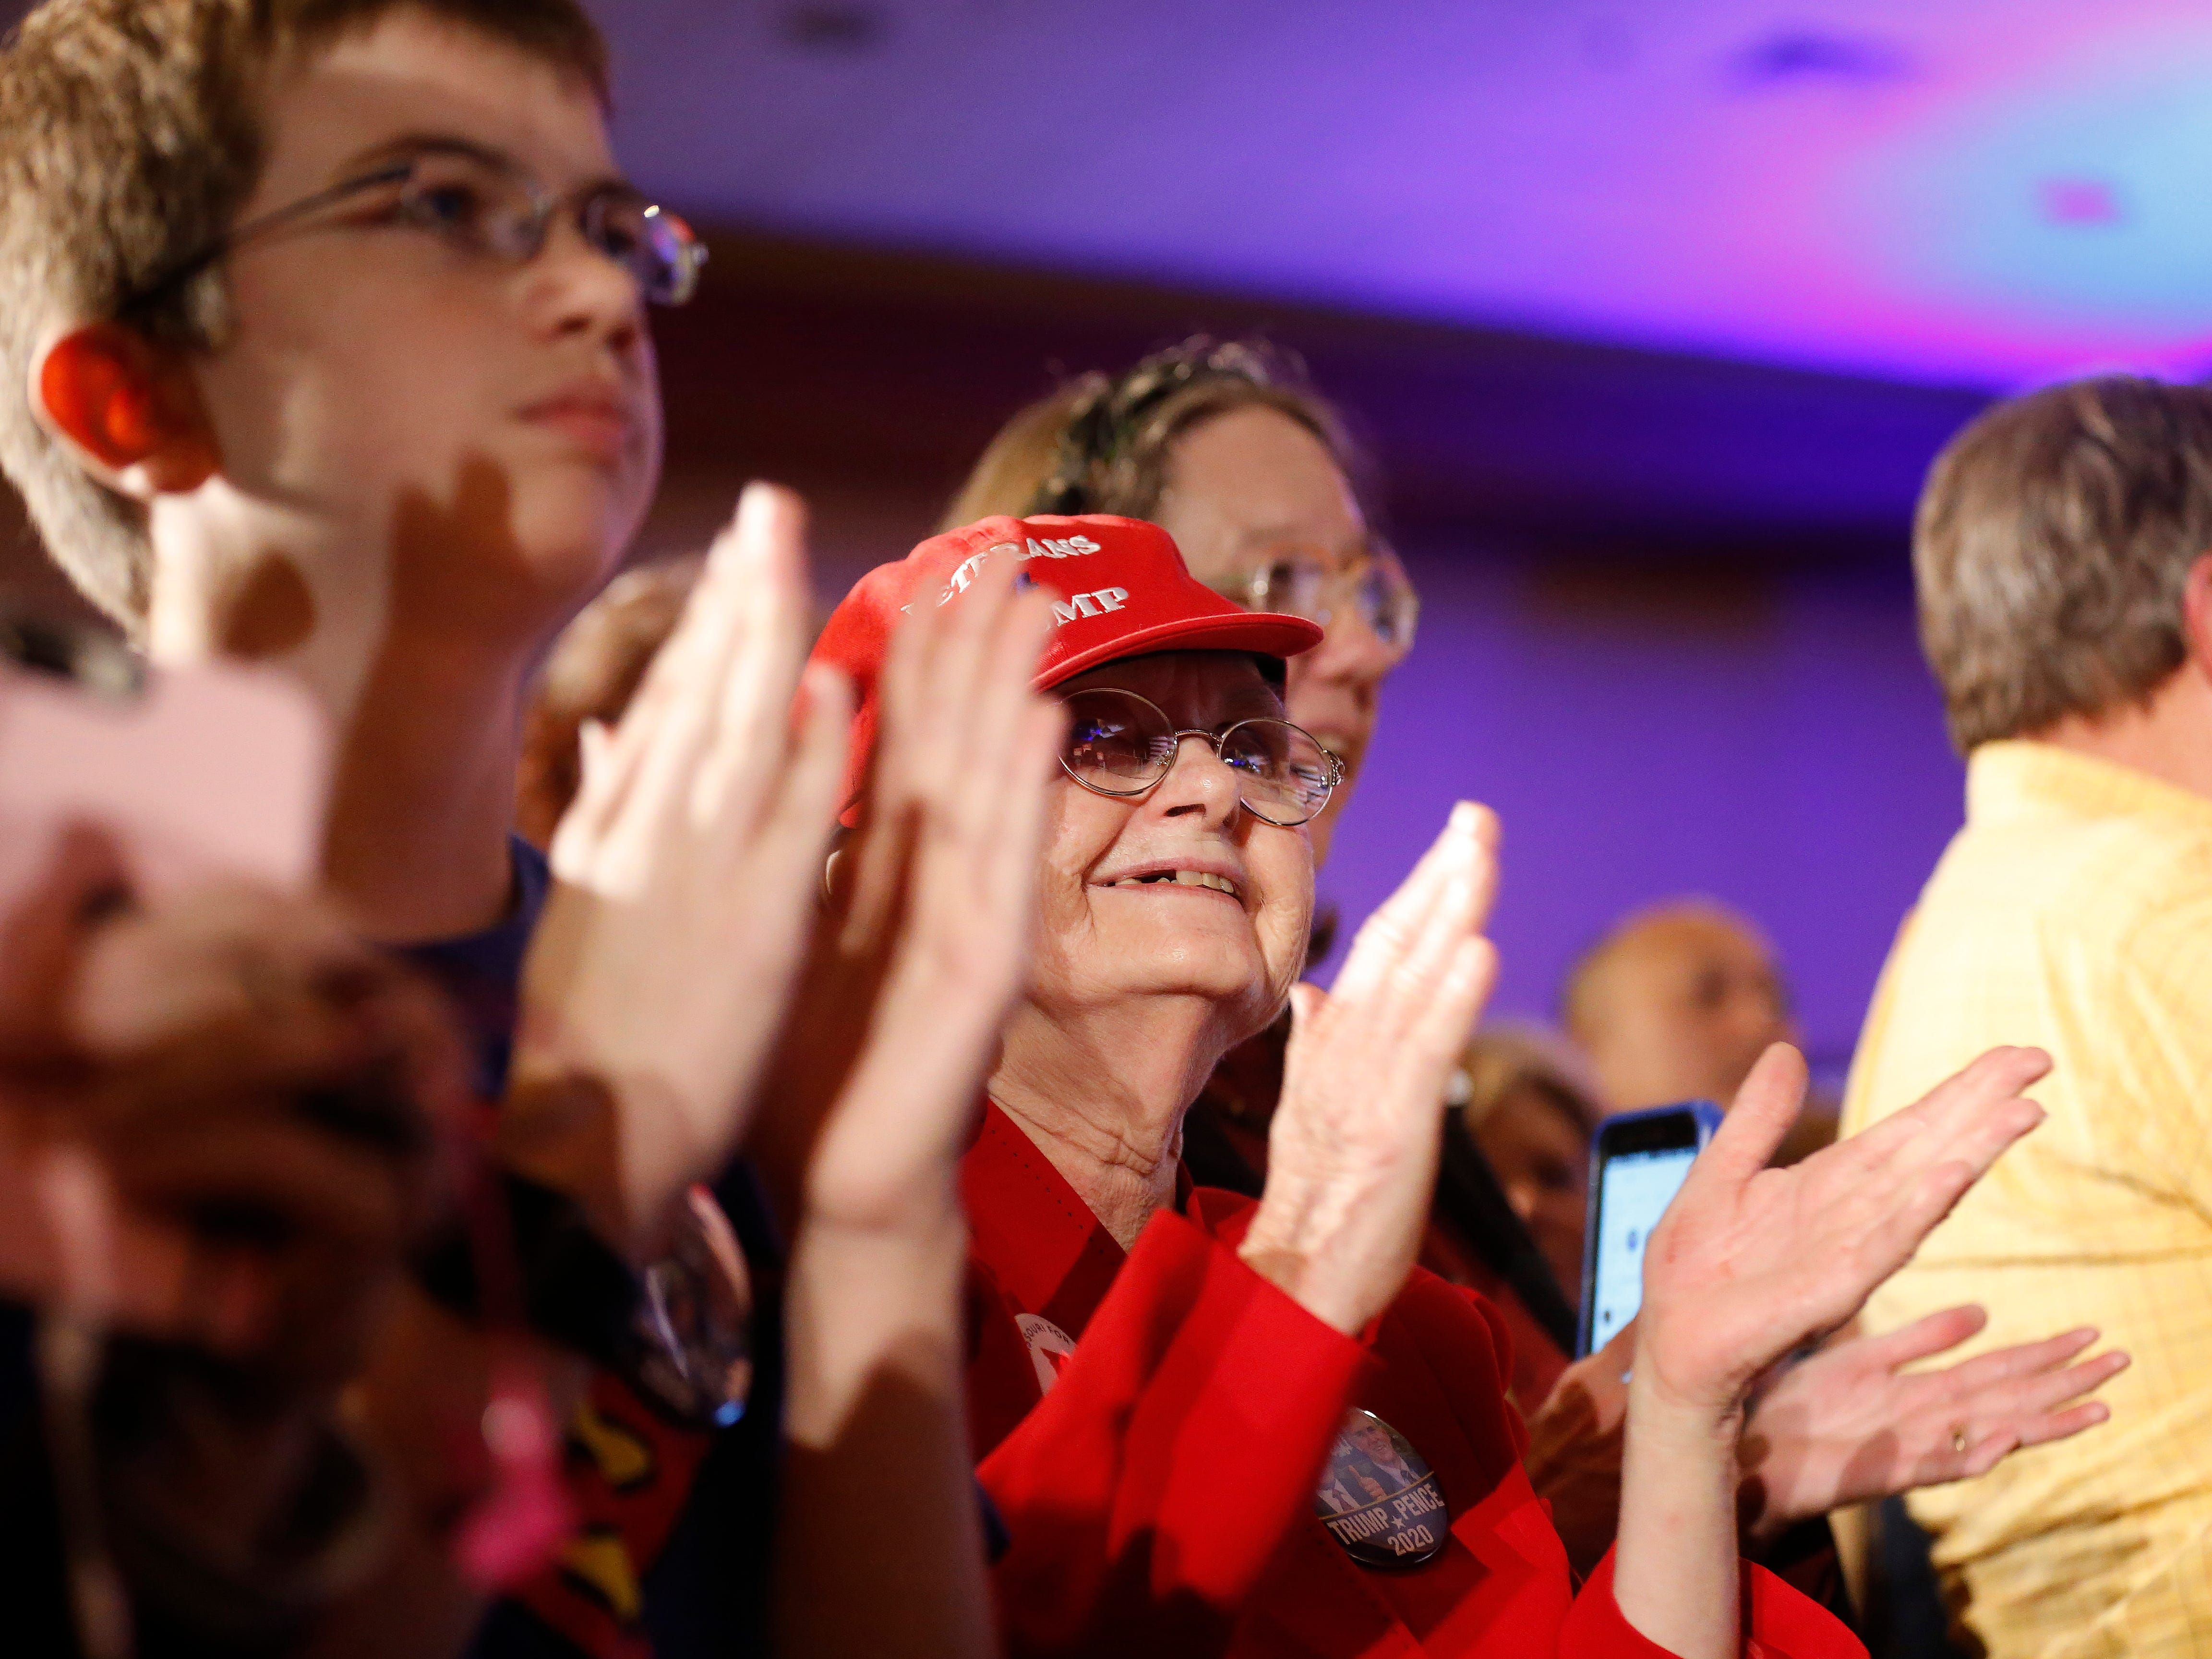 Shirley Gilman cheers during the Greene County Republican's watch party at the University Plaza hotel on Tuesday, Nov. 6, 2018.